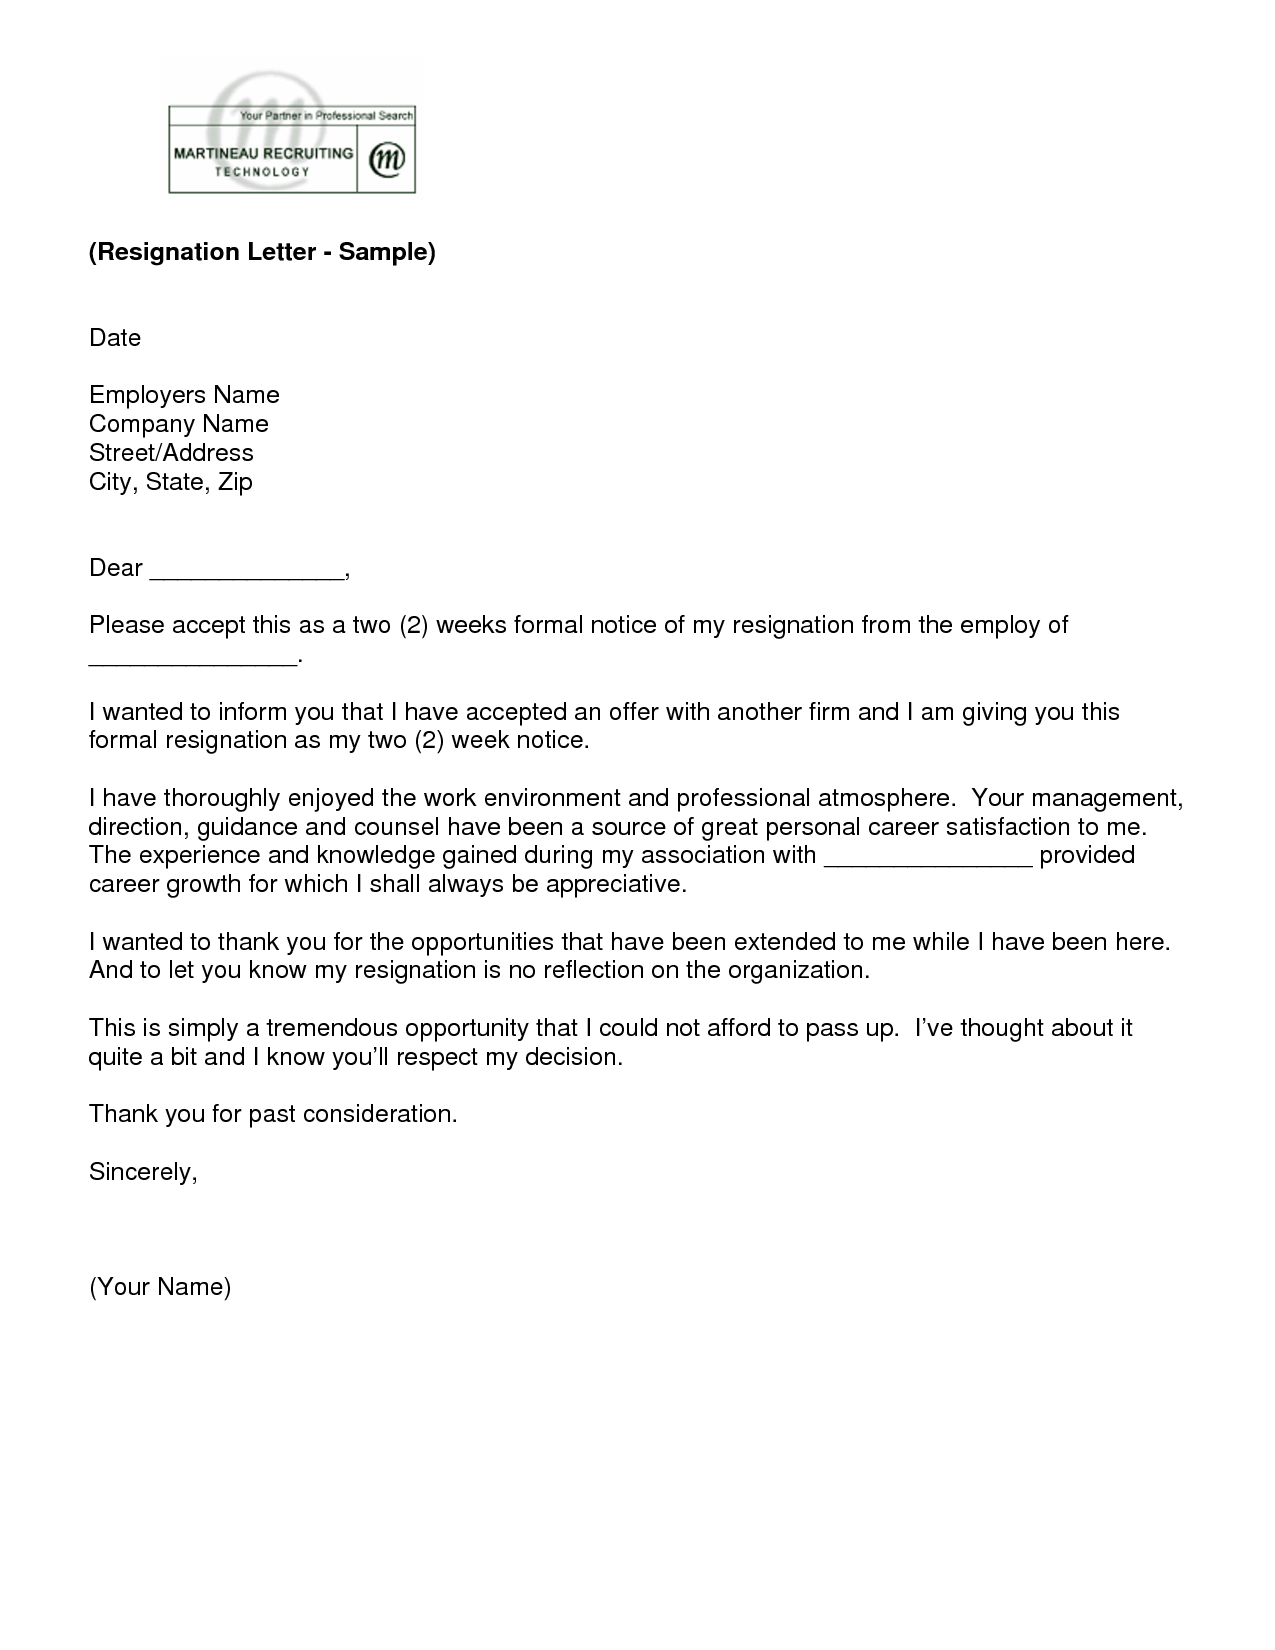 Letter Of Resignation 2 Weeks Notice Template Resignation Letter